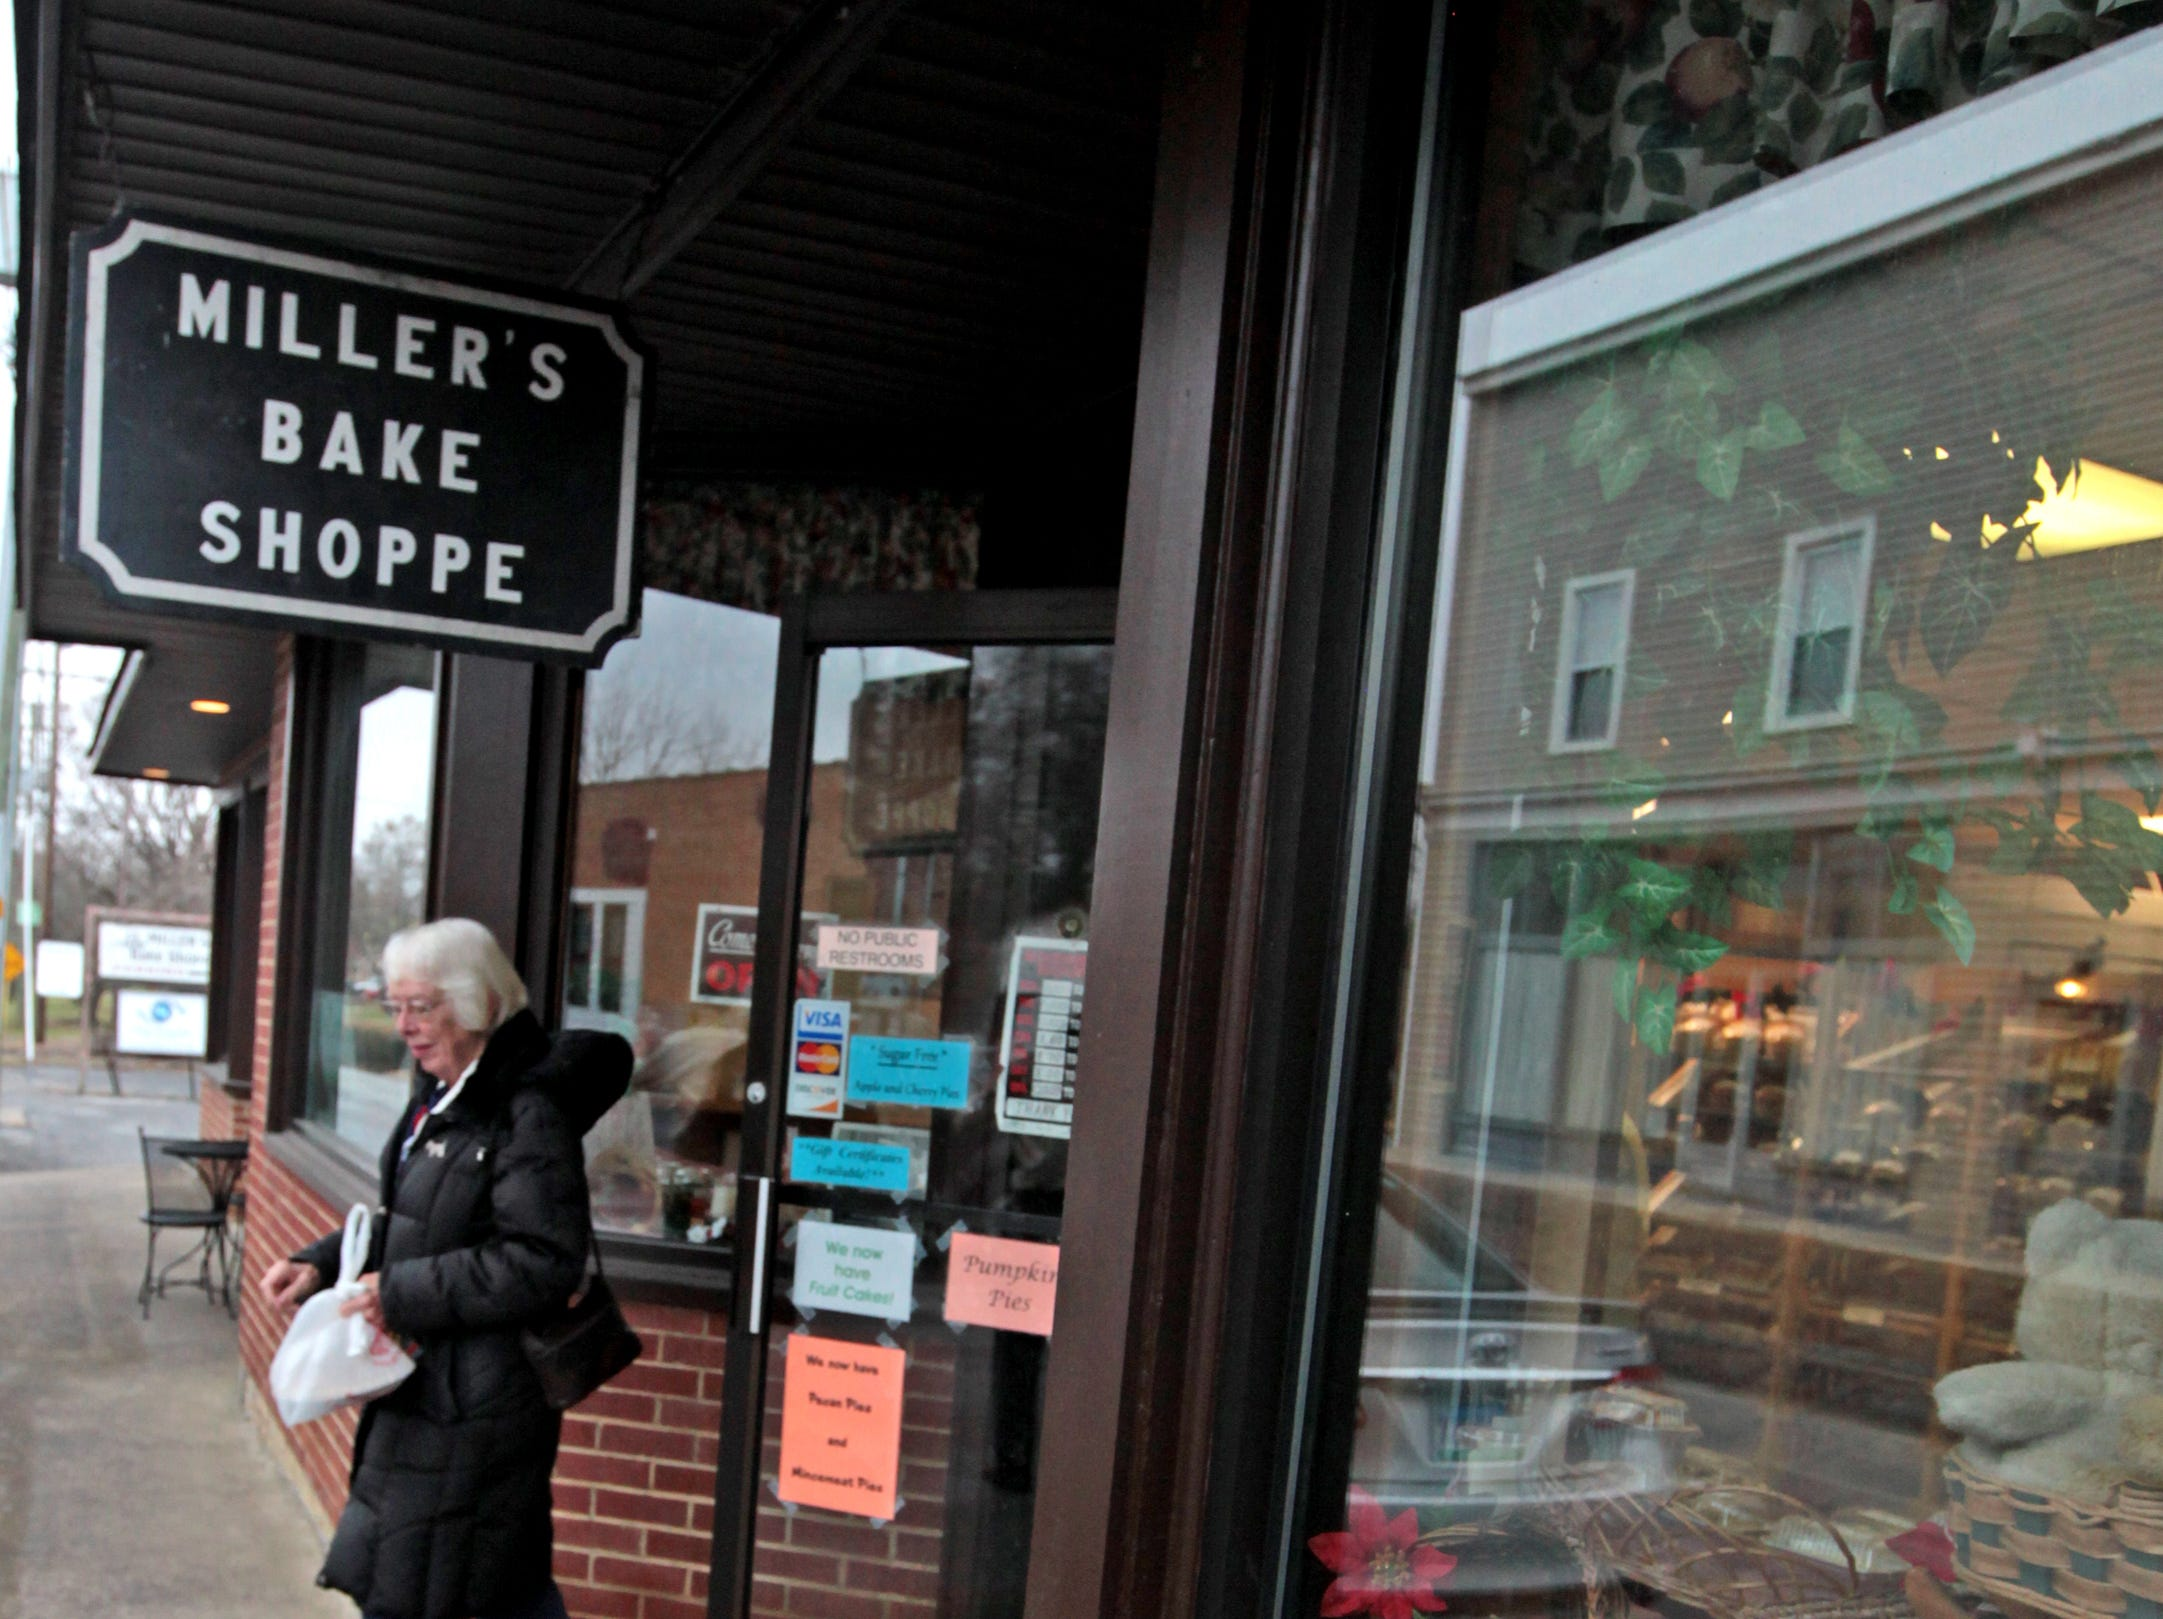 Customers come and go with baked goods at Miller's Bake Shoppe in Stuarts Draft on Dec. 1, 2018. The bakery sells dozens of traditional fruitcakes every holiday season.